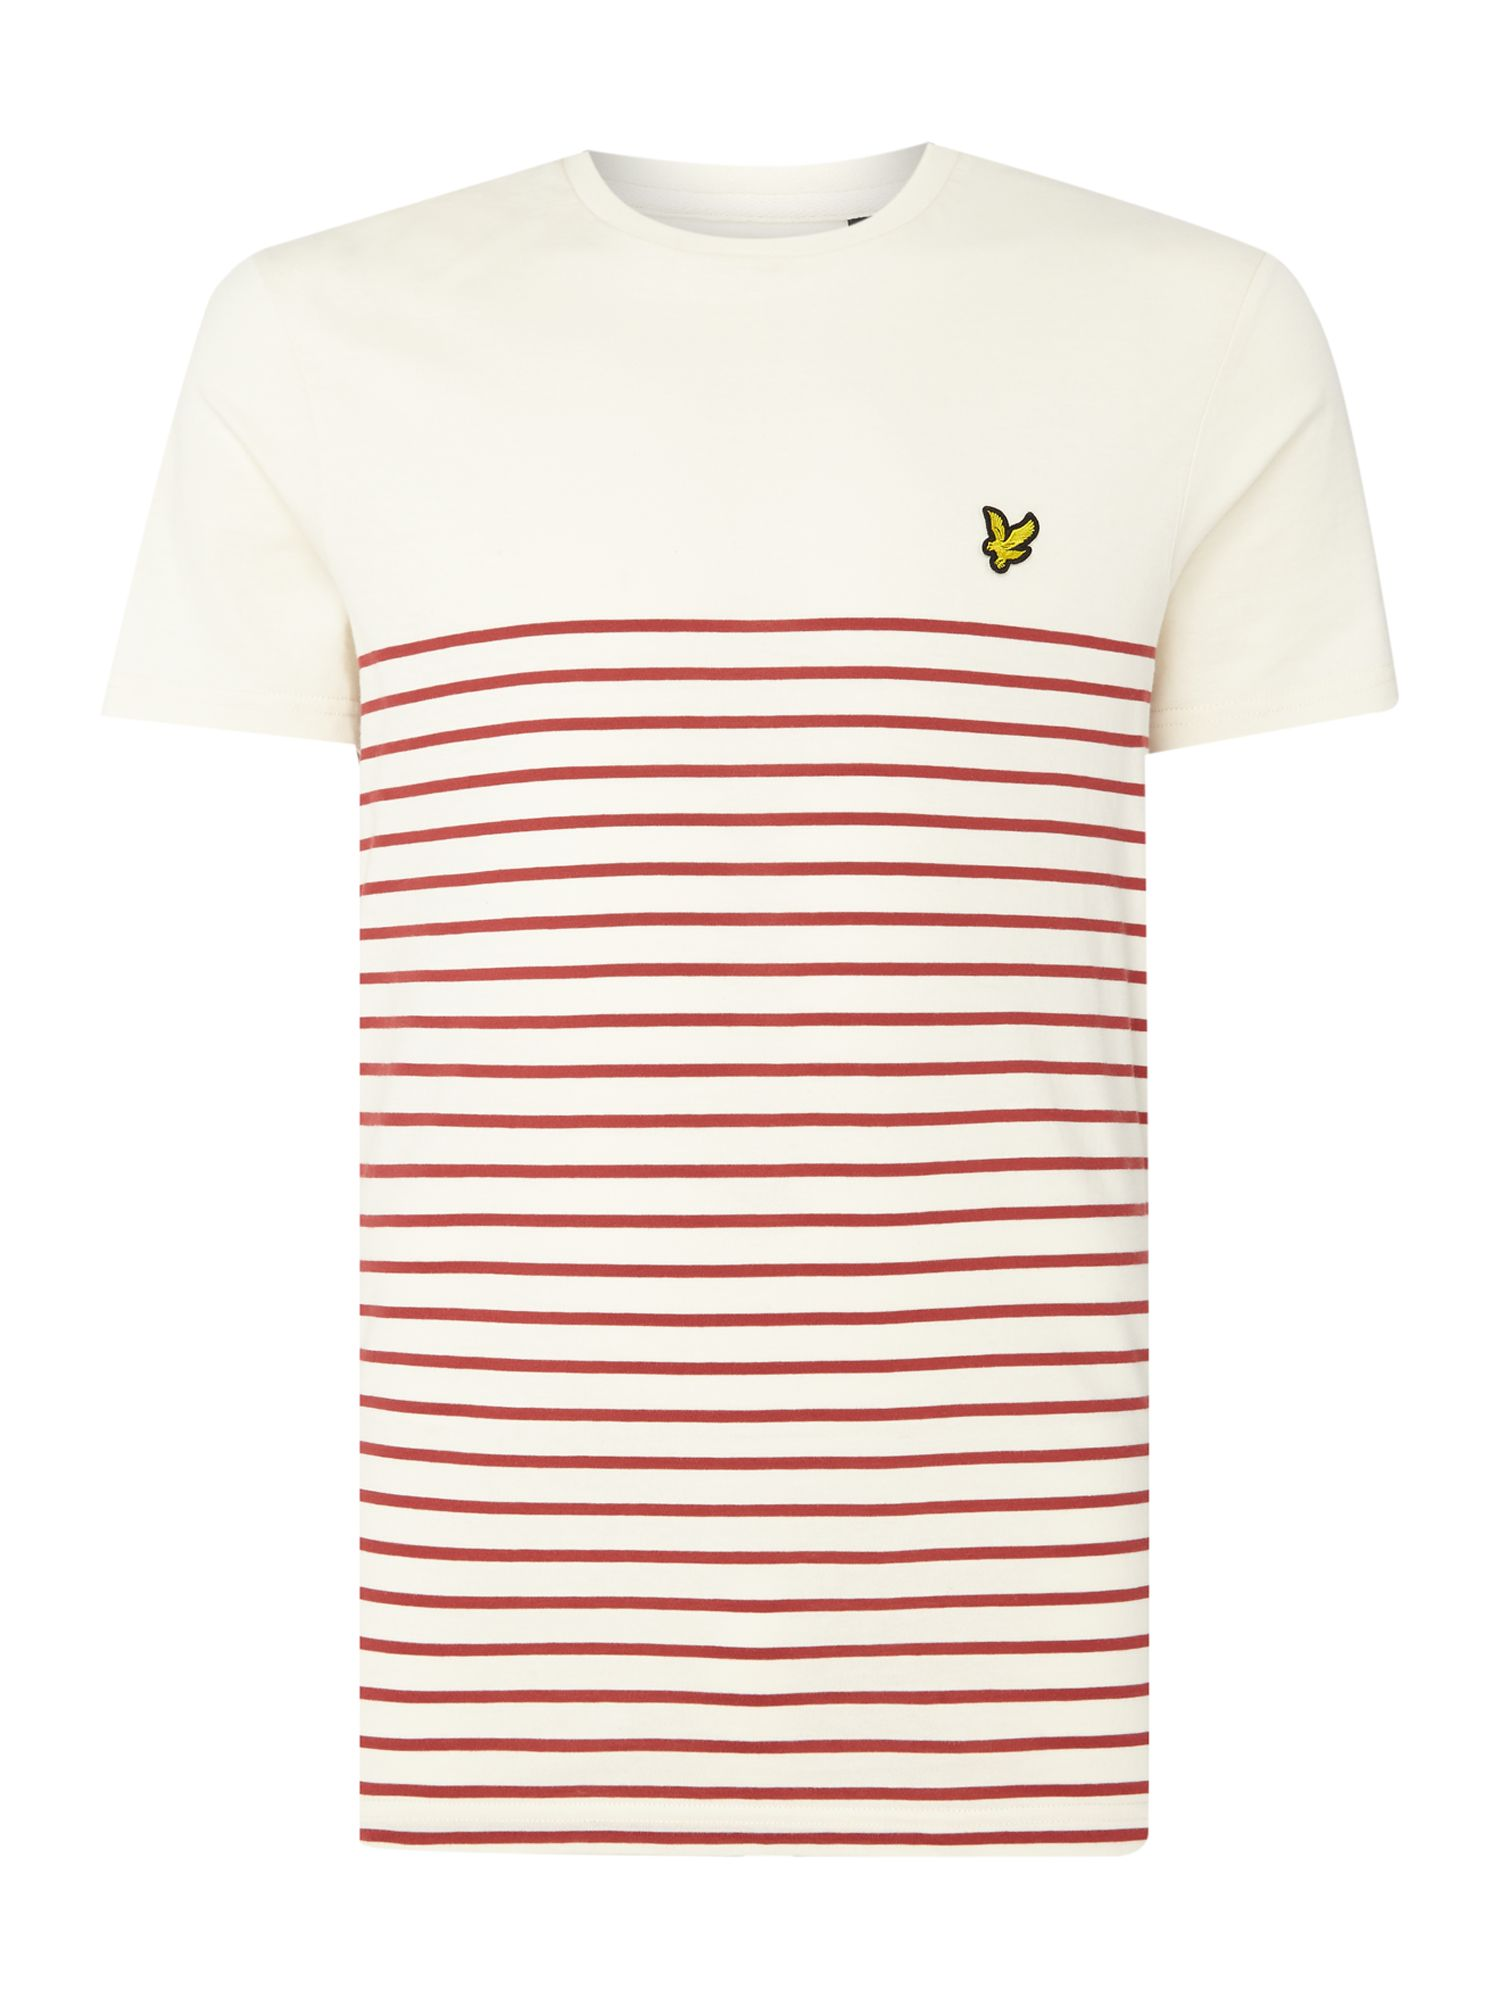 Men's Lyle and Scott Breton crew neck short sleeve t-shirt, Red